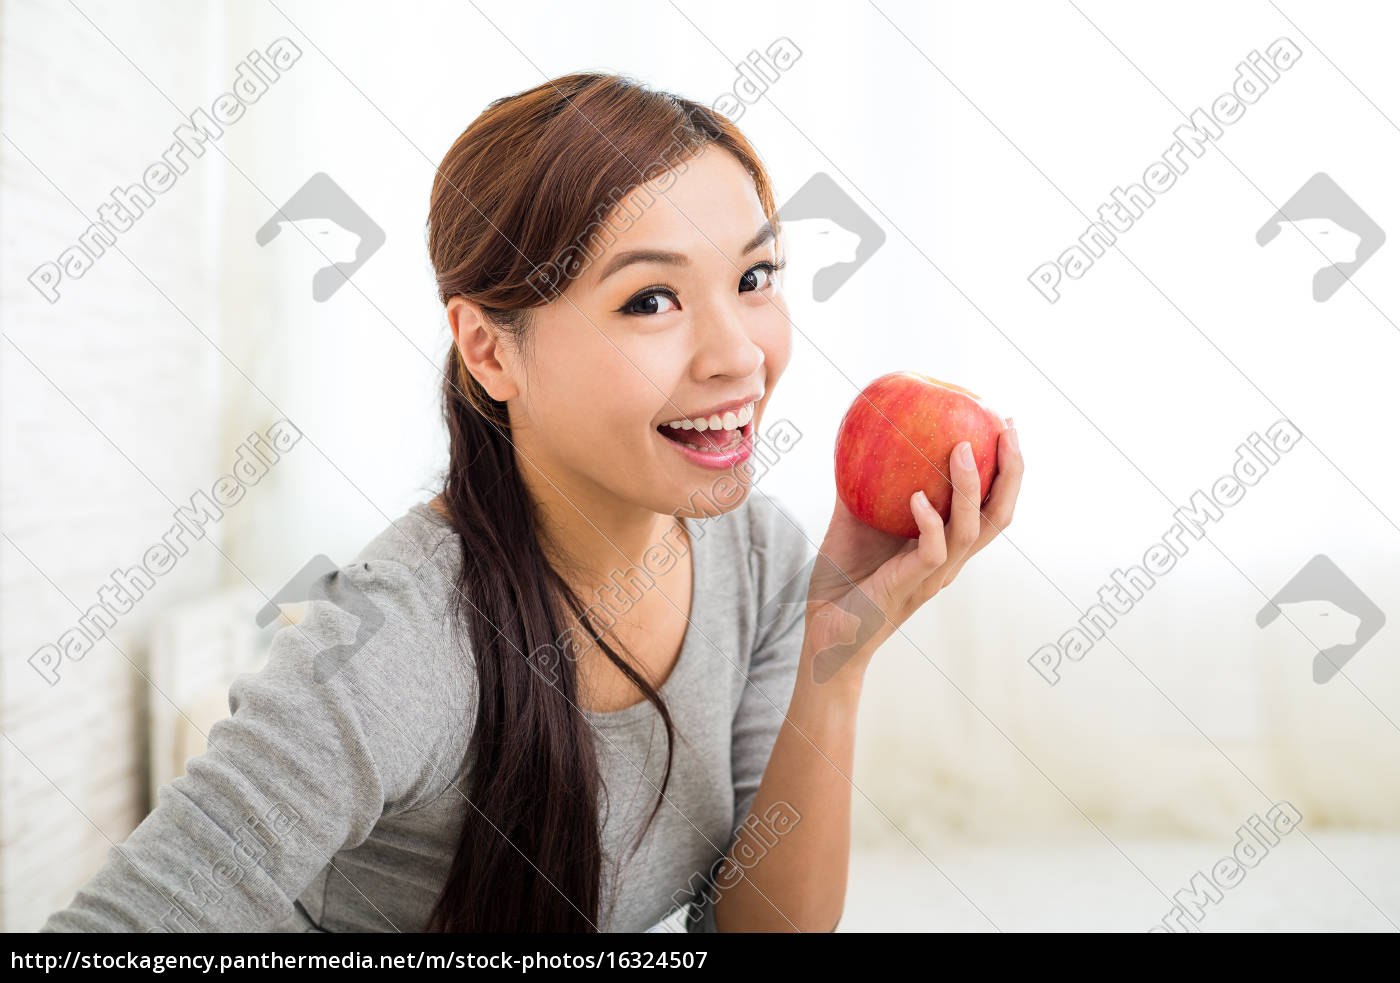 woman, with, an, apple - 16324507